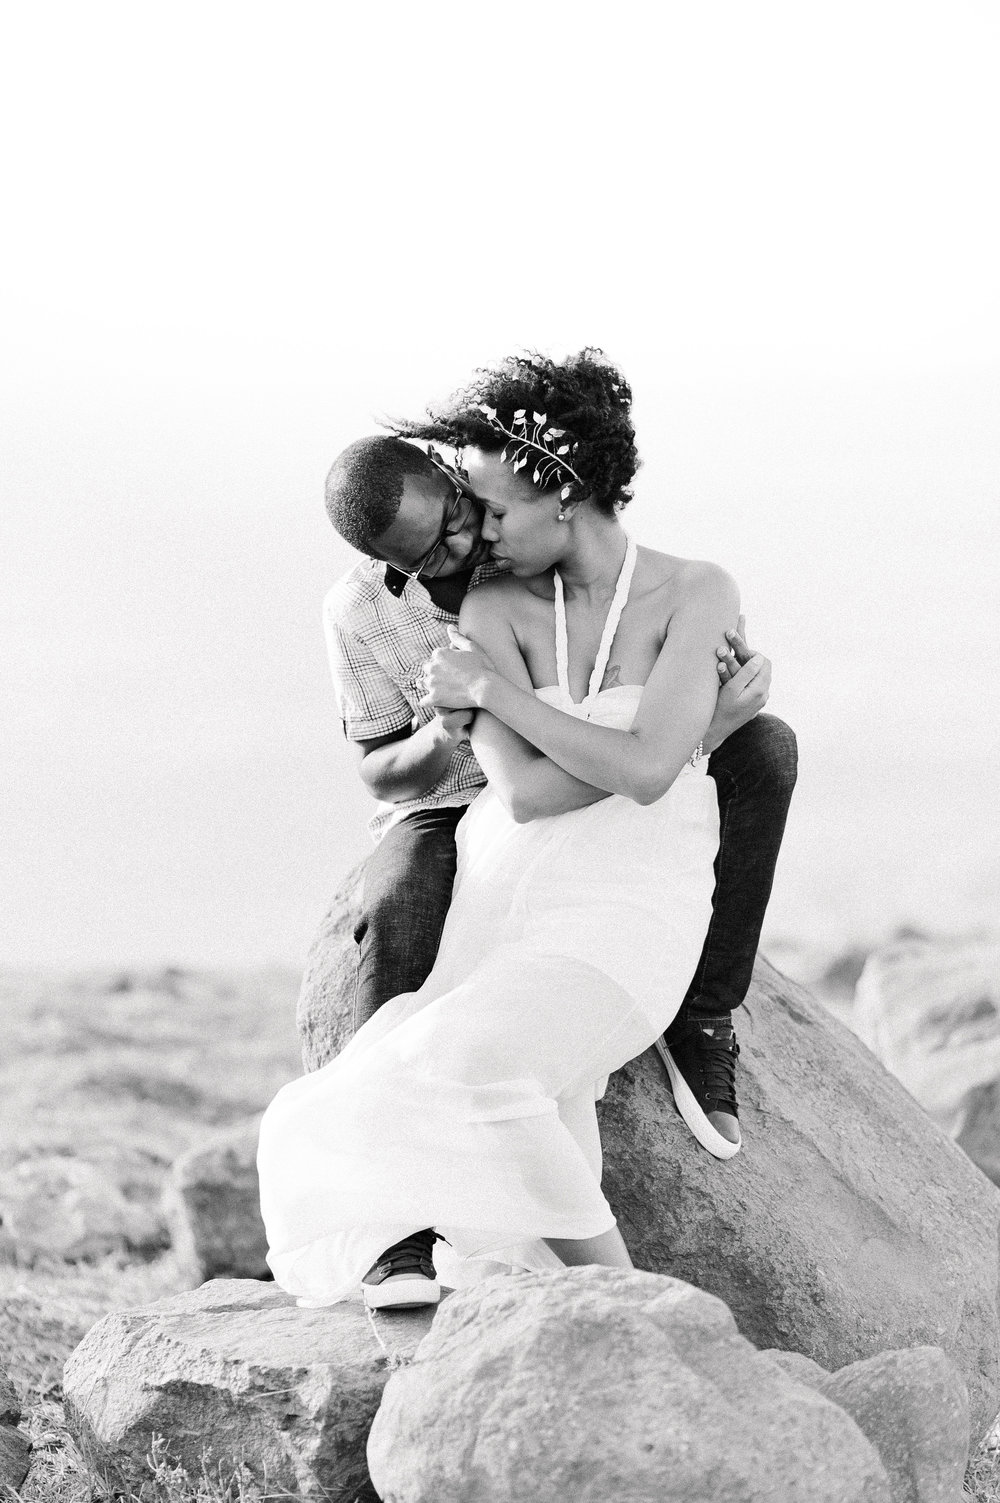 Anna-Hari-Photography-Kenyan-Wedding-Photographer-Ngong-Hills-Elopement-Kenya-48.jpg